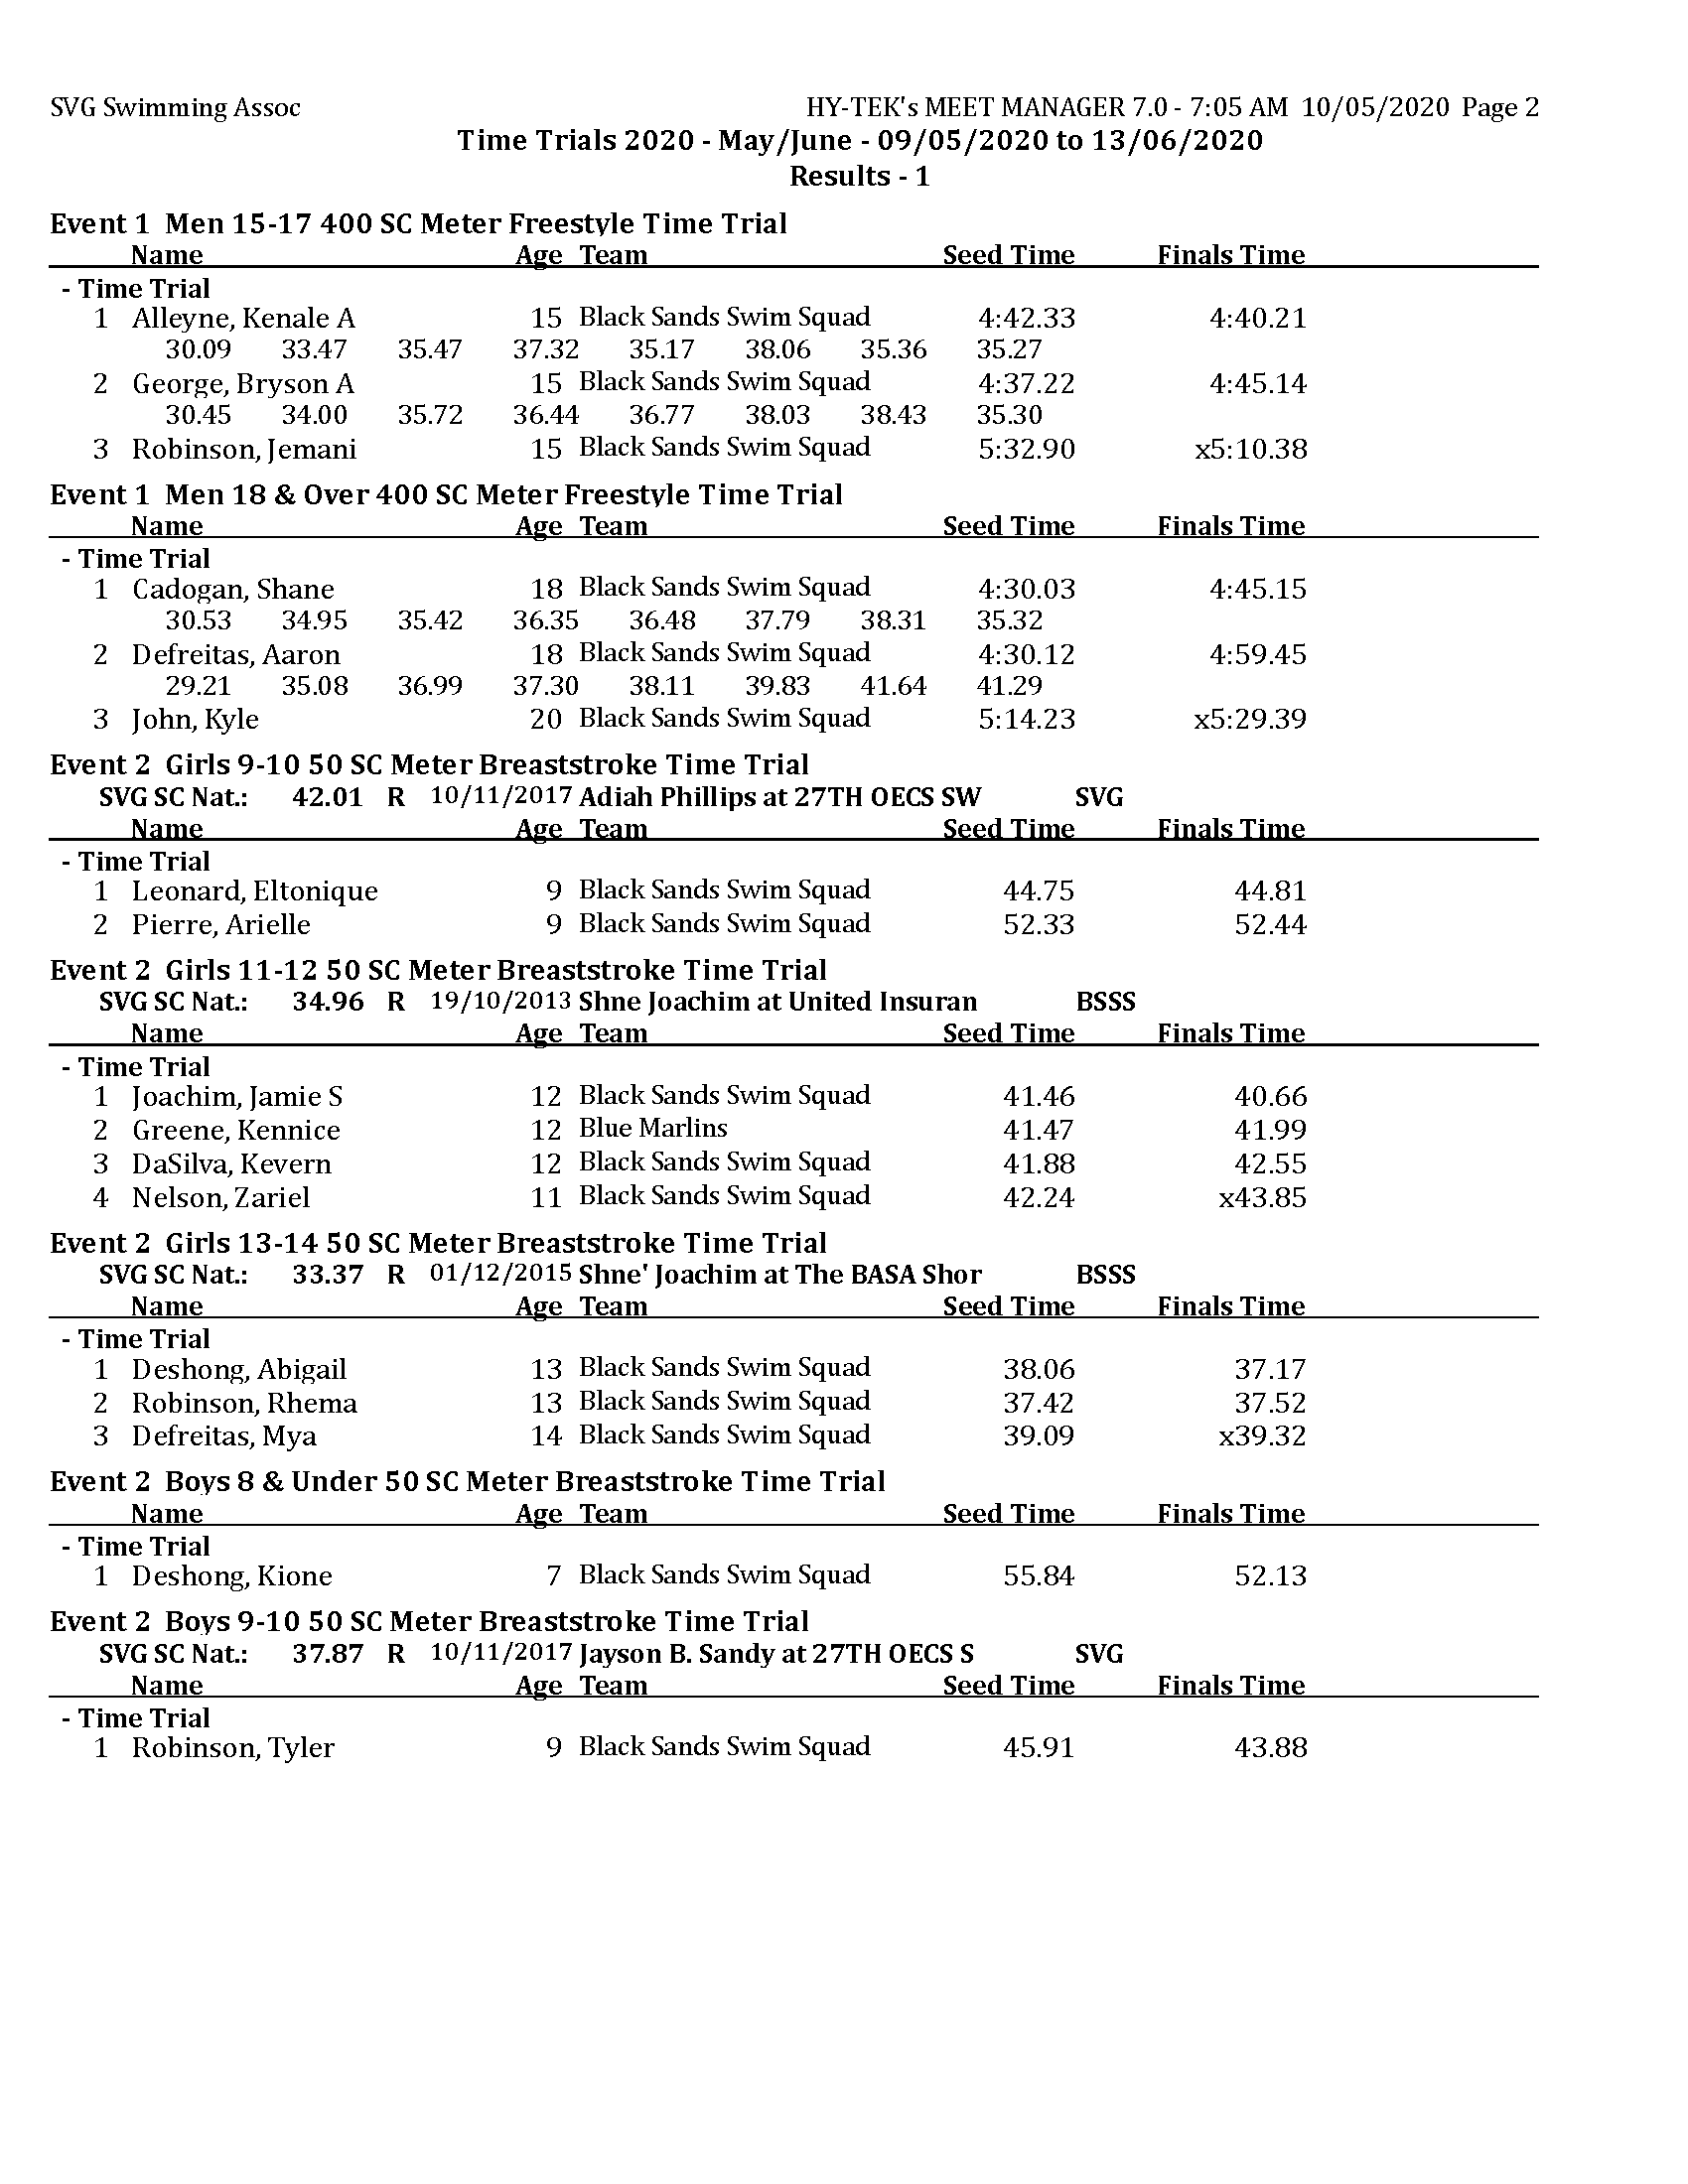 TT 2020 - May - Results day 1 MM_Page_2